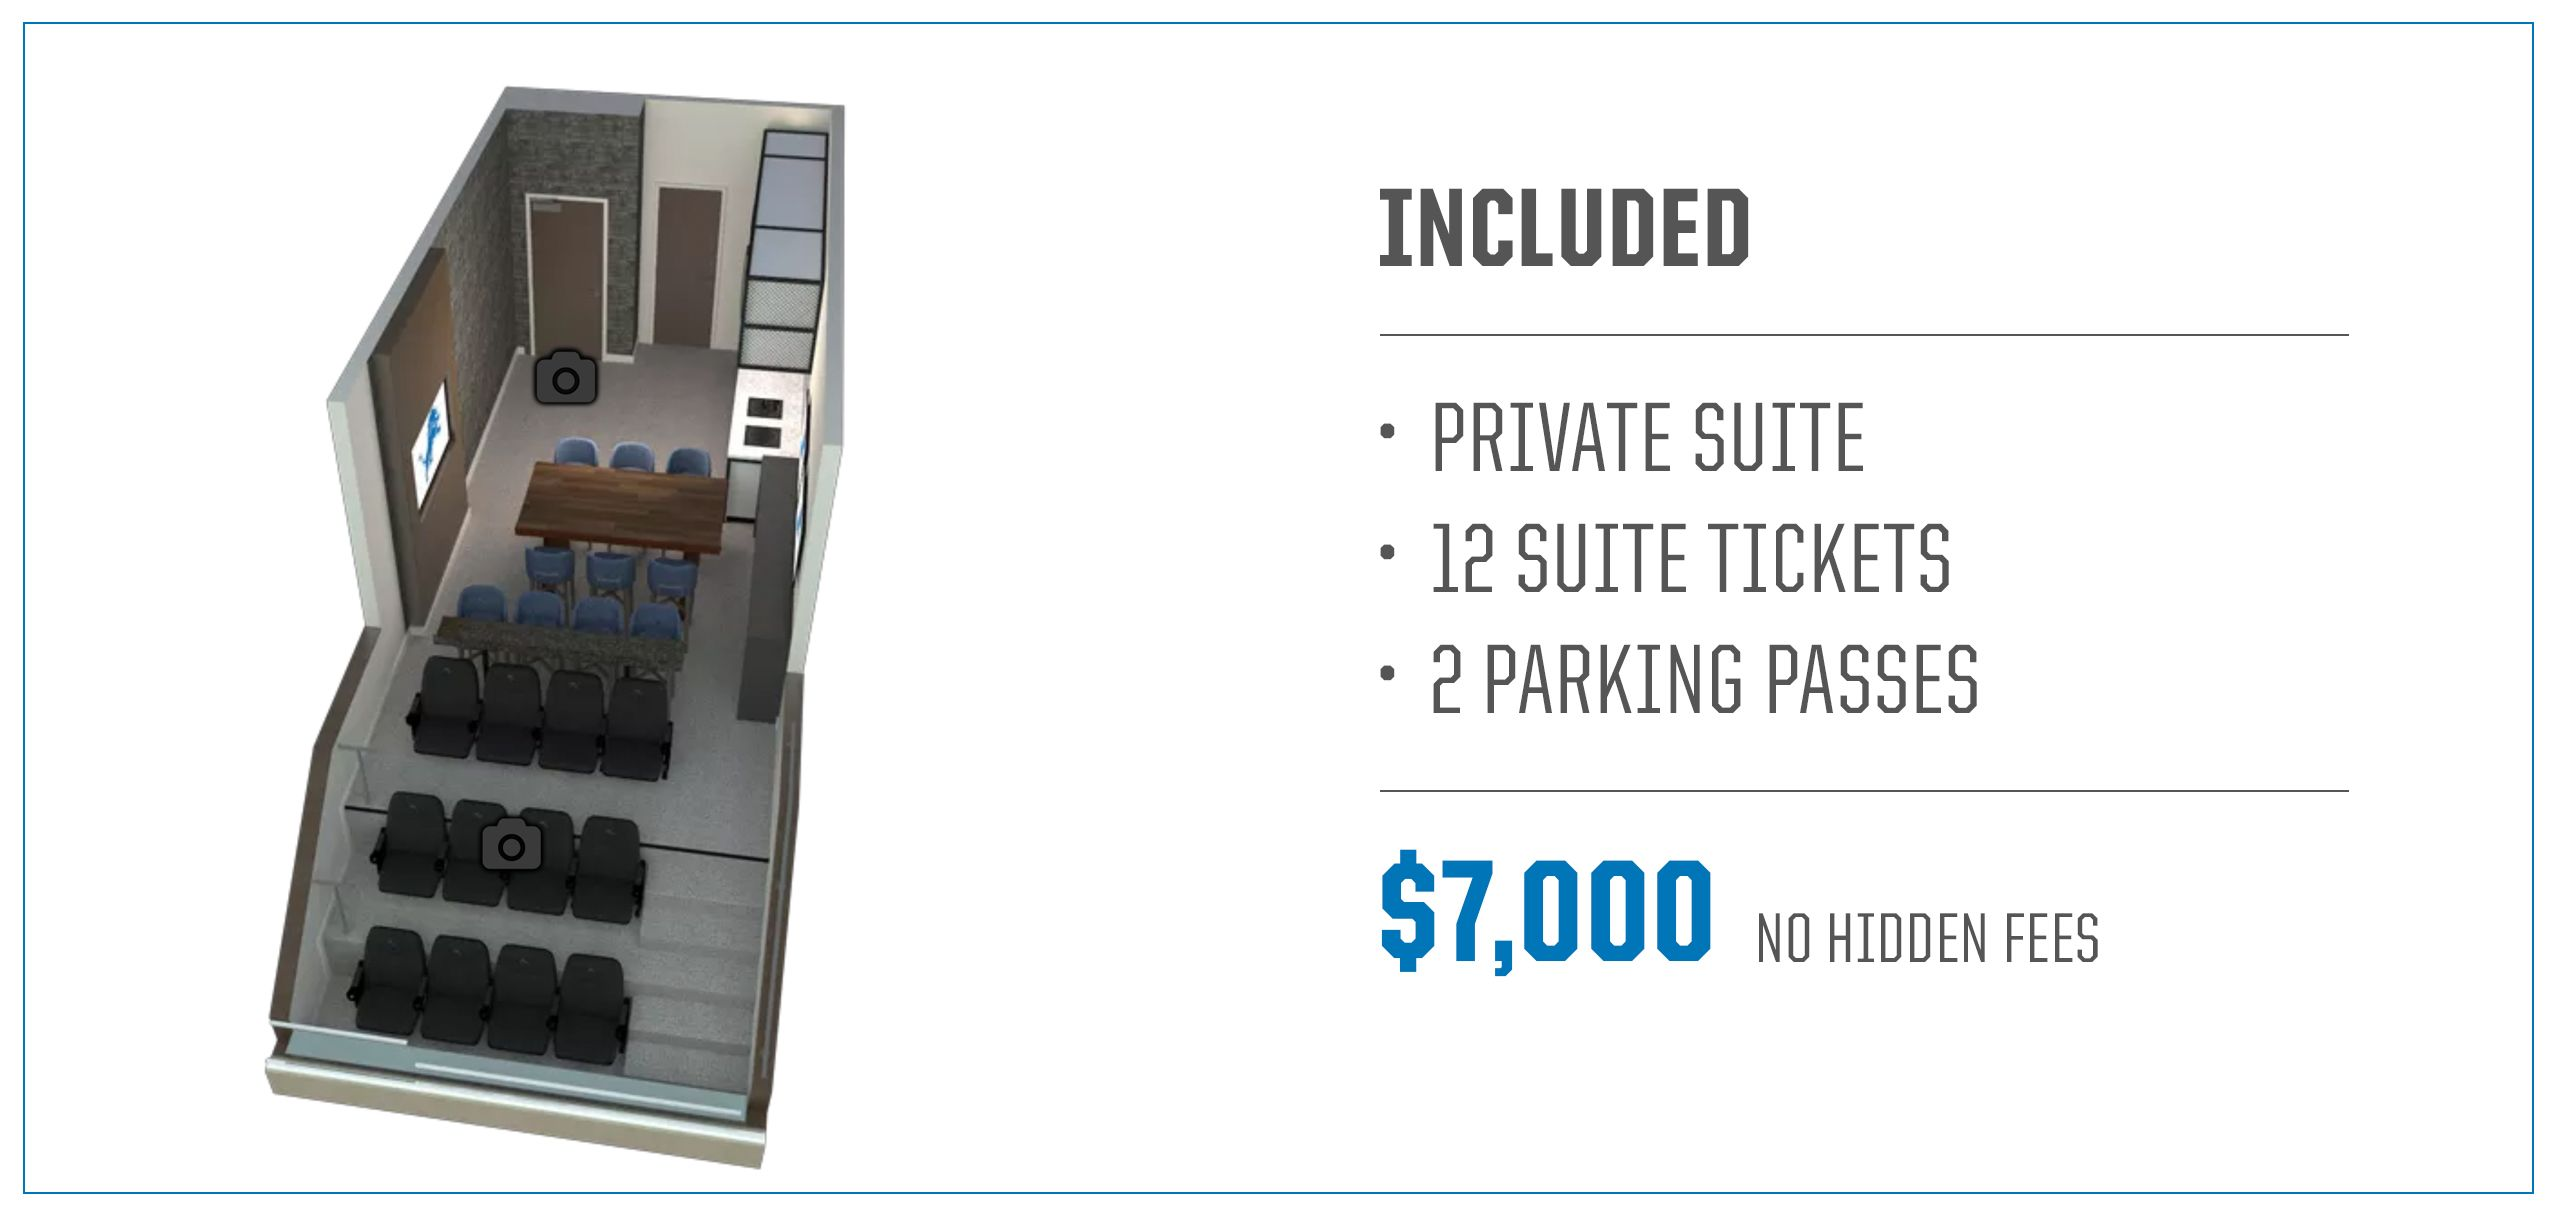 2020-suite-purchase-information-map-630-redskins